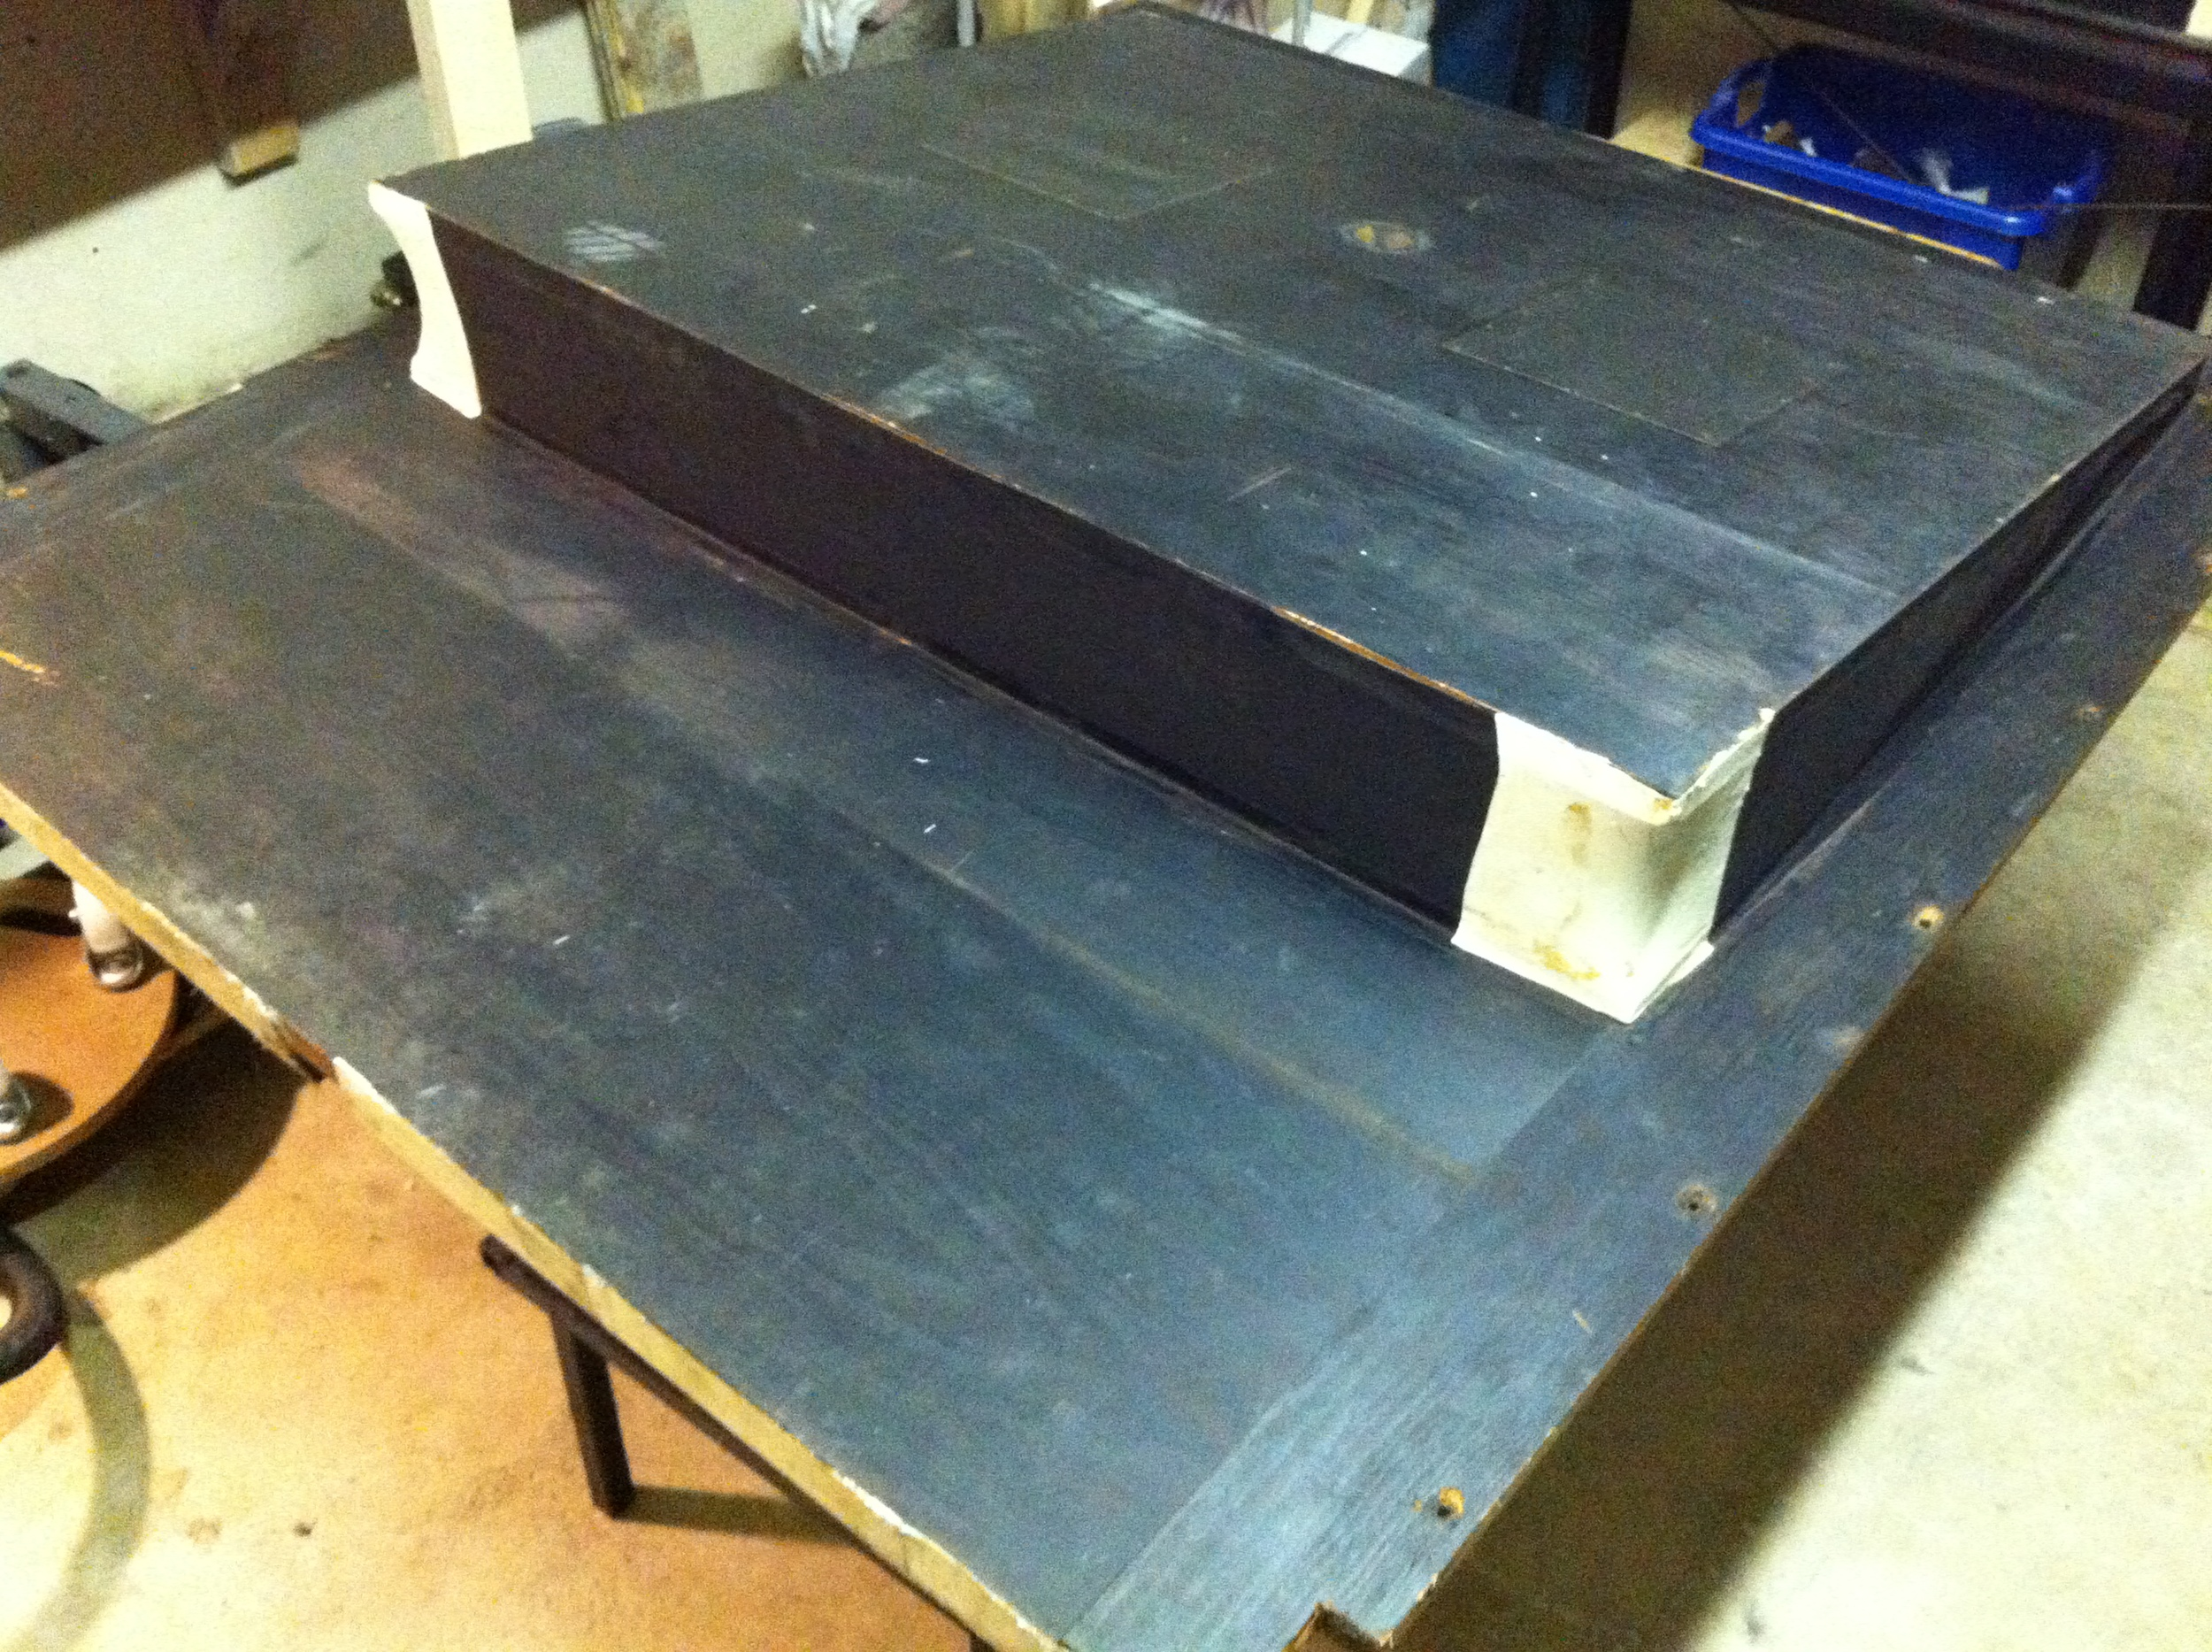 The back bellows with old cloth and corner patches